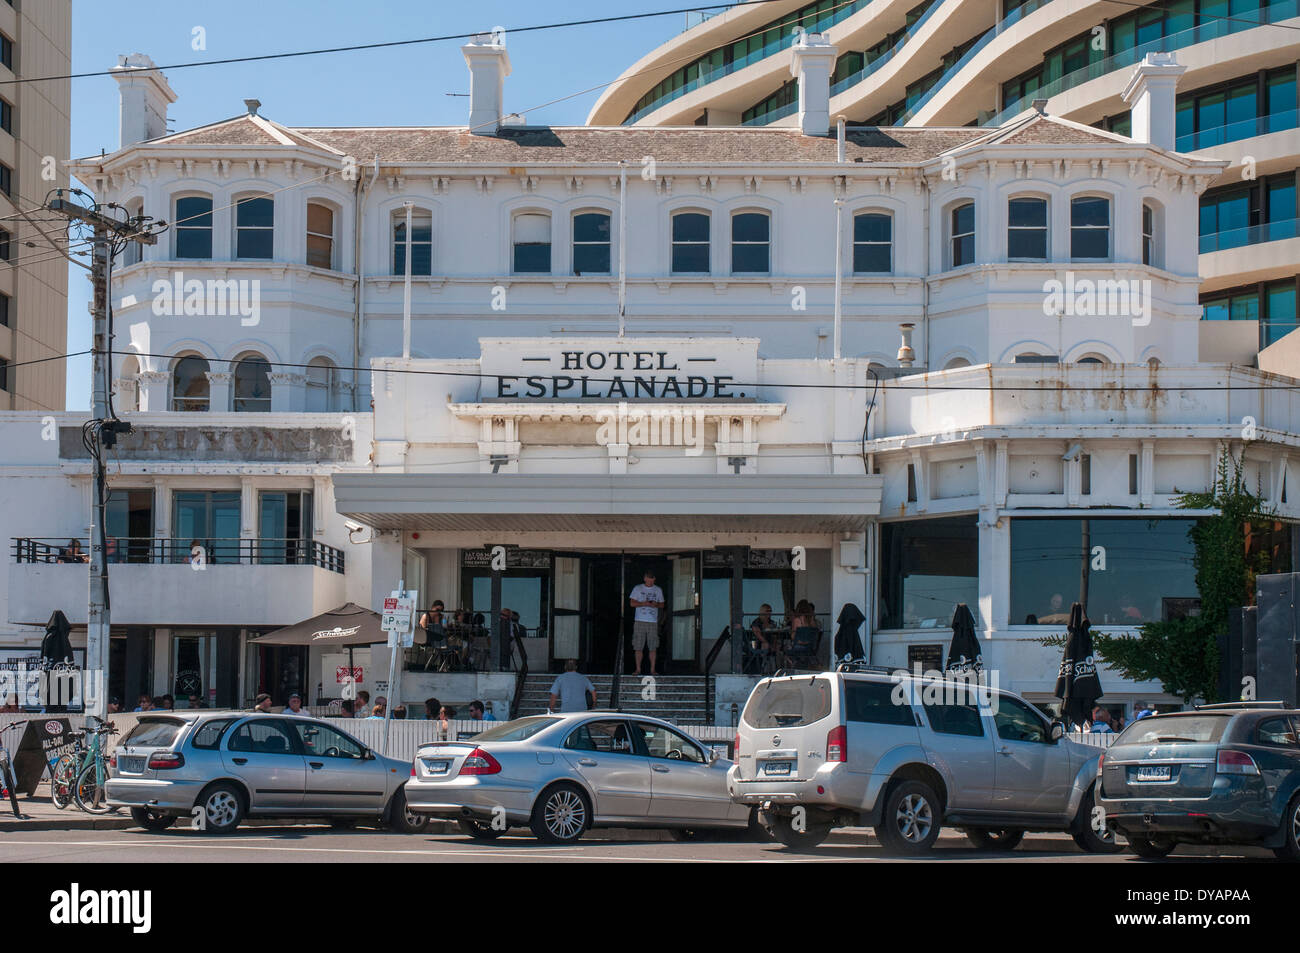 'The Espy' (Esplanade Hotel) a popular live music venue on the St Kilda Esplanade, Melbourne Stock Photo